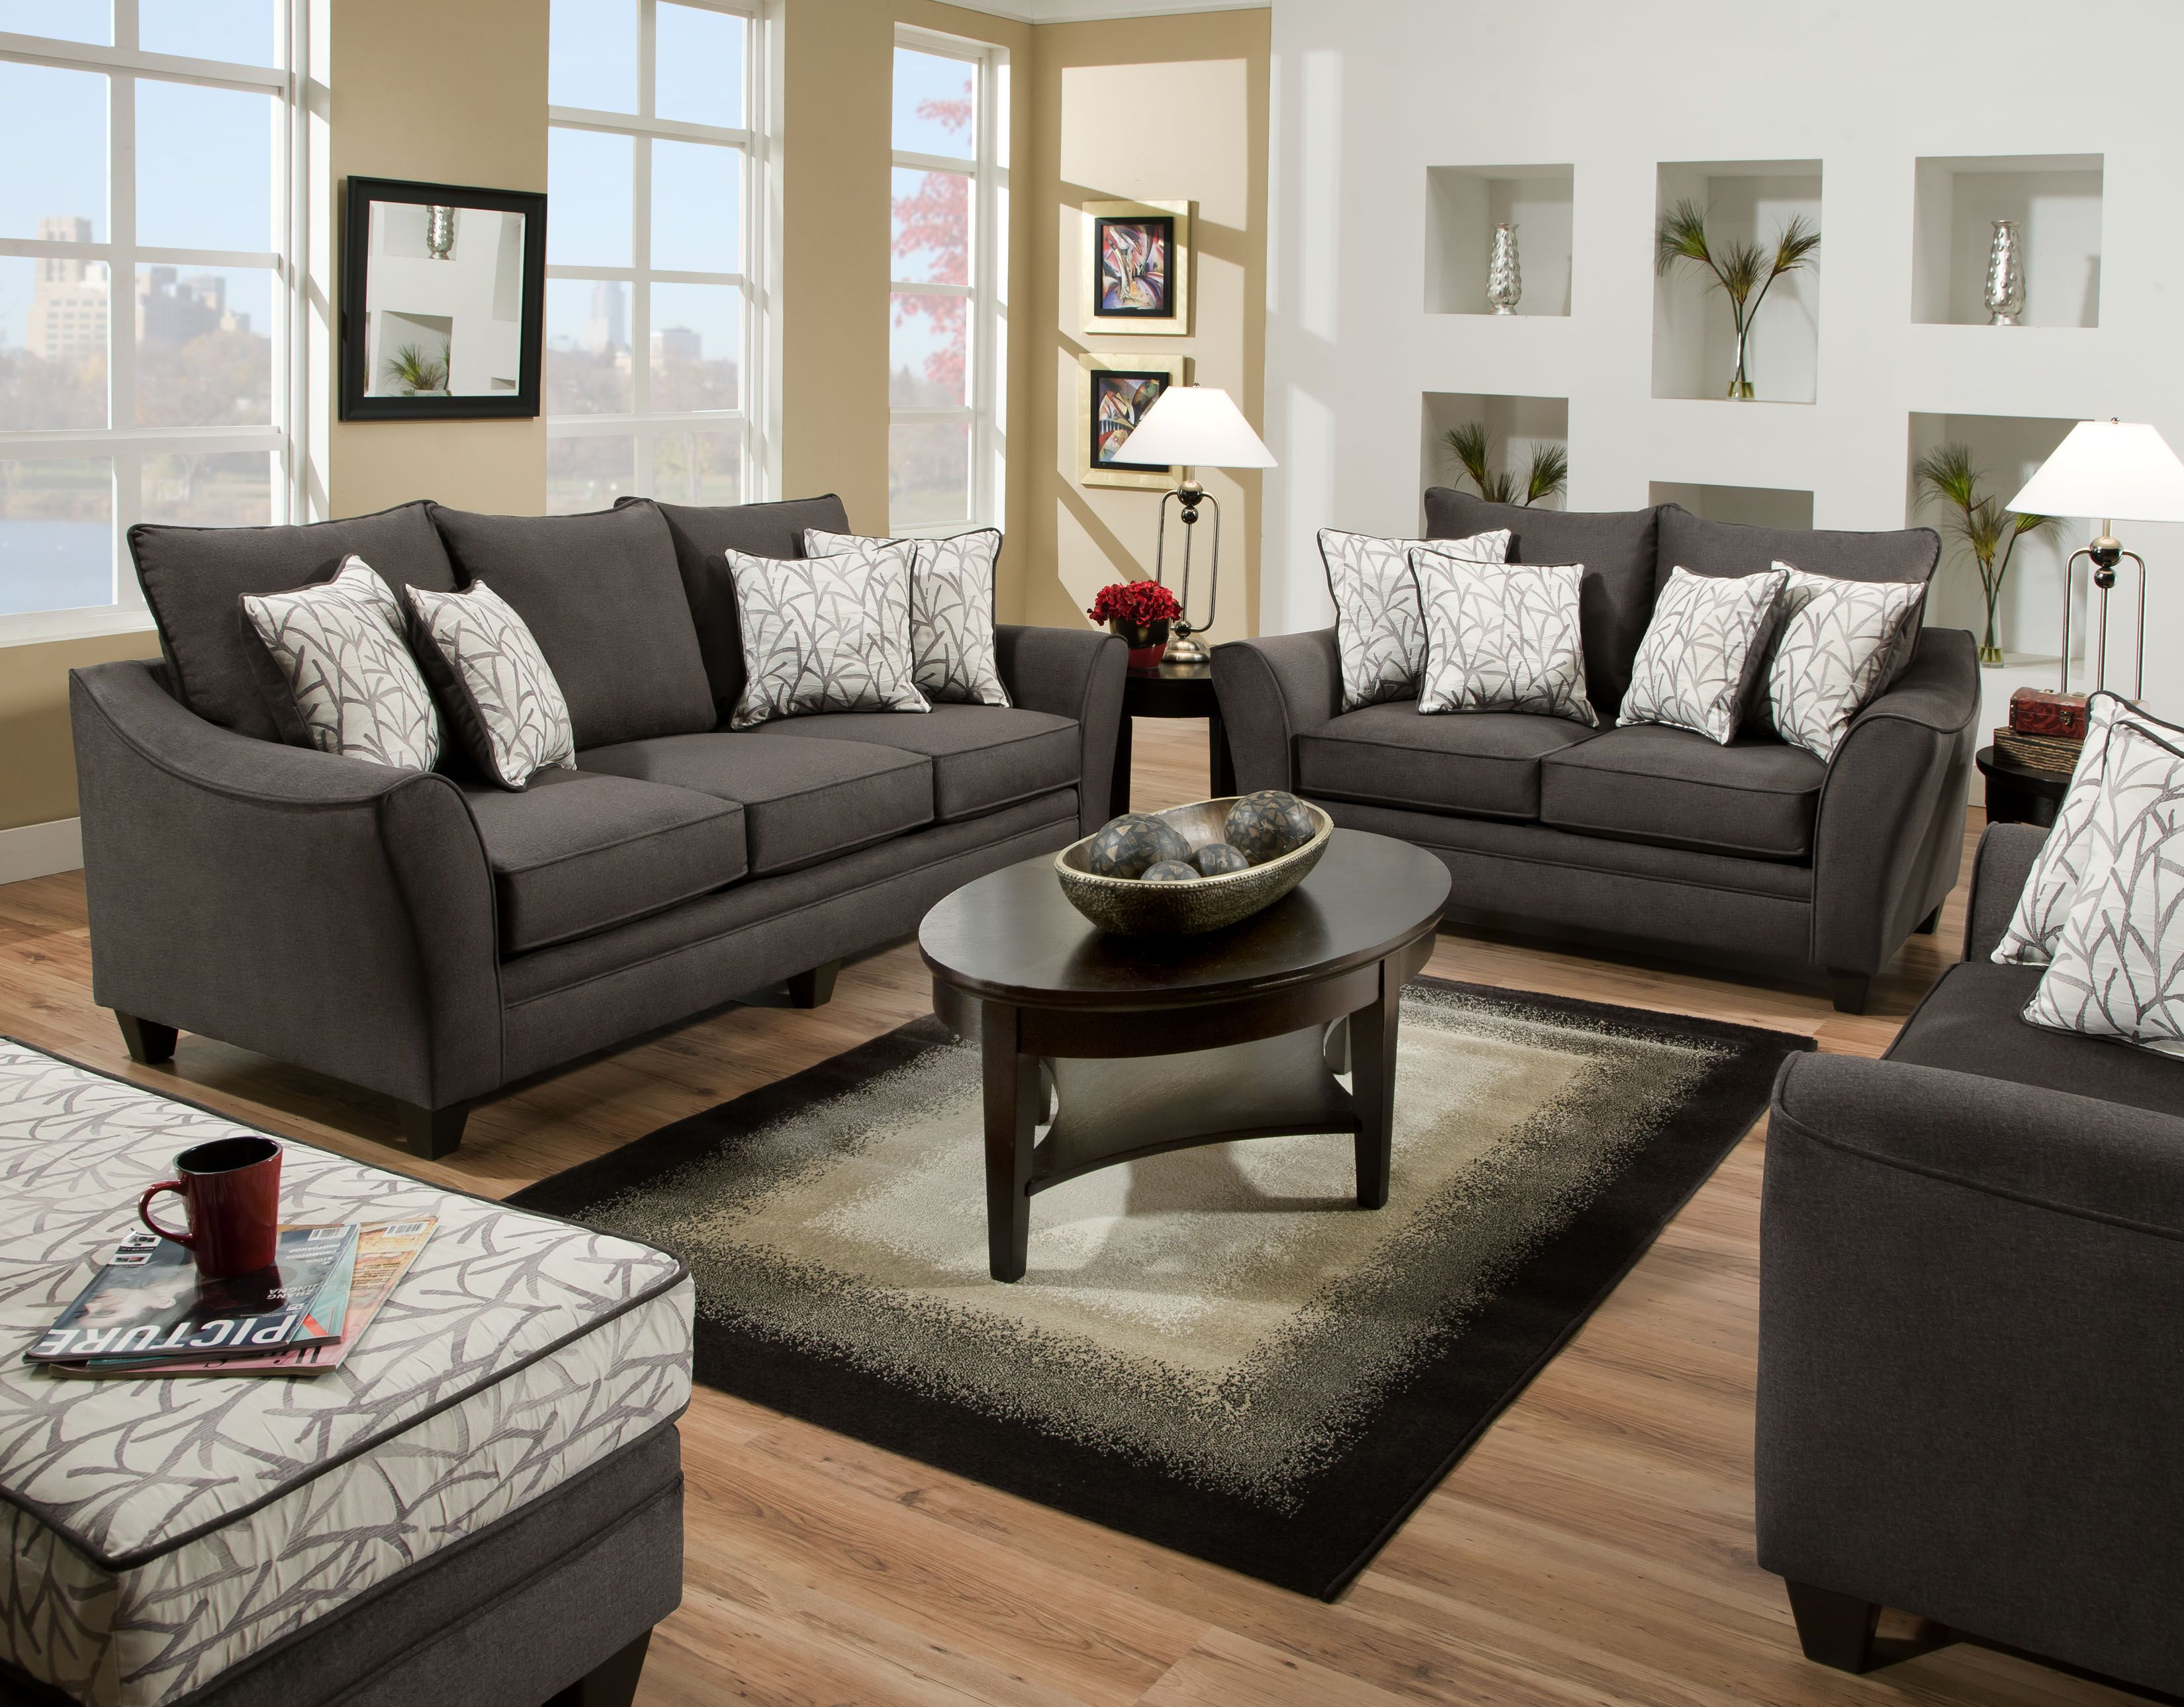 Big 39 S Furniture Las Vegas Is Dedicated To Bringing You A Wide